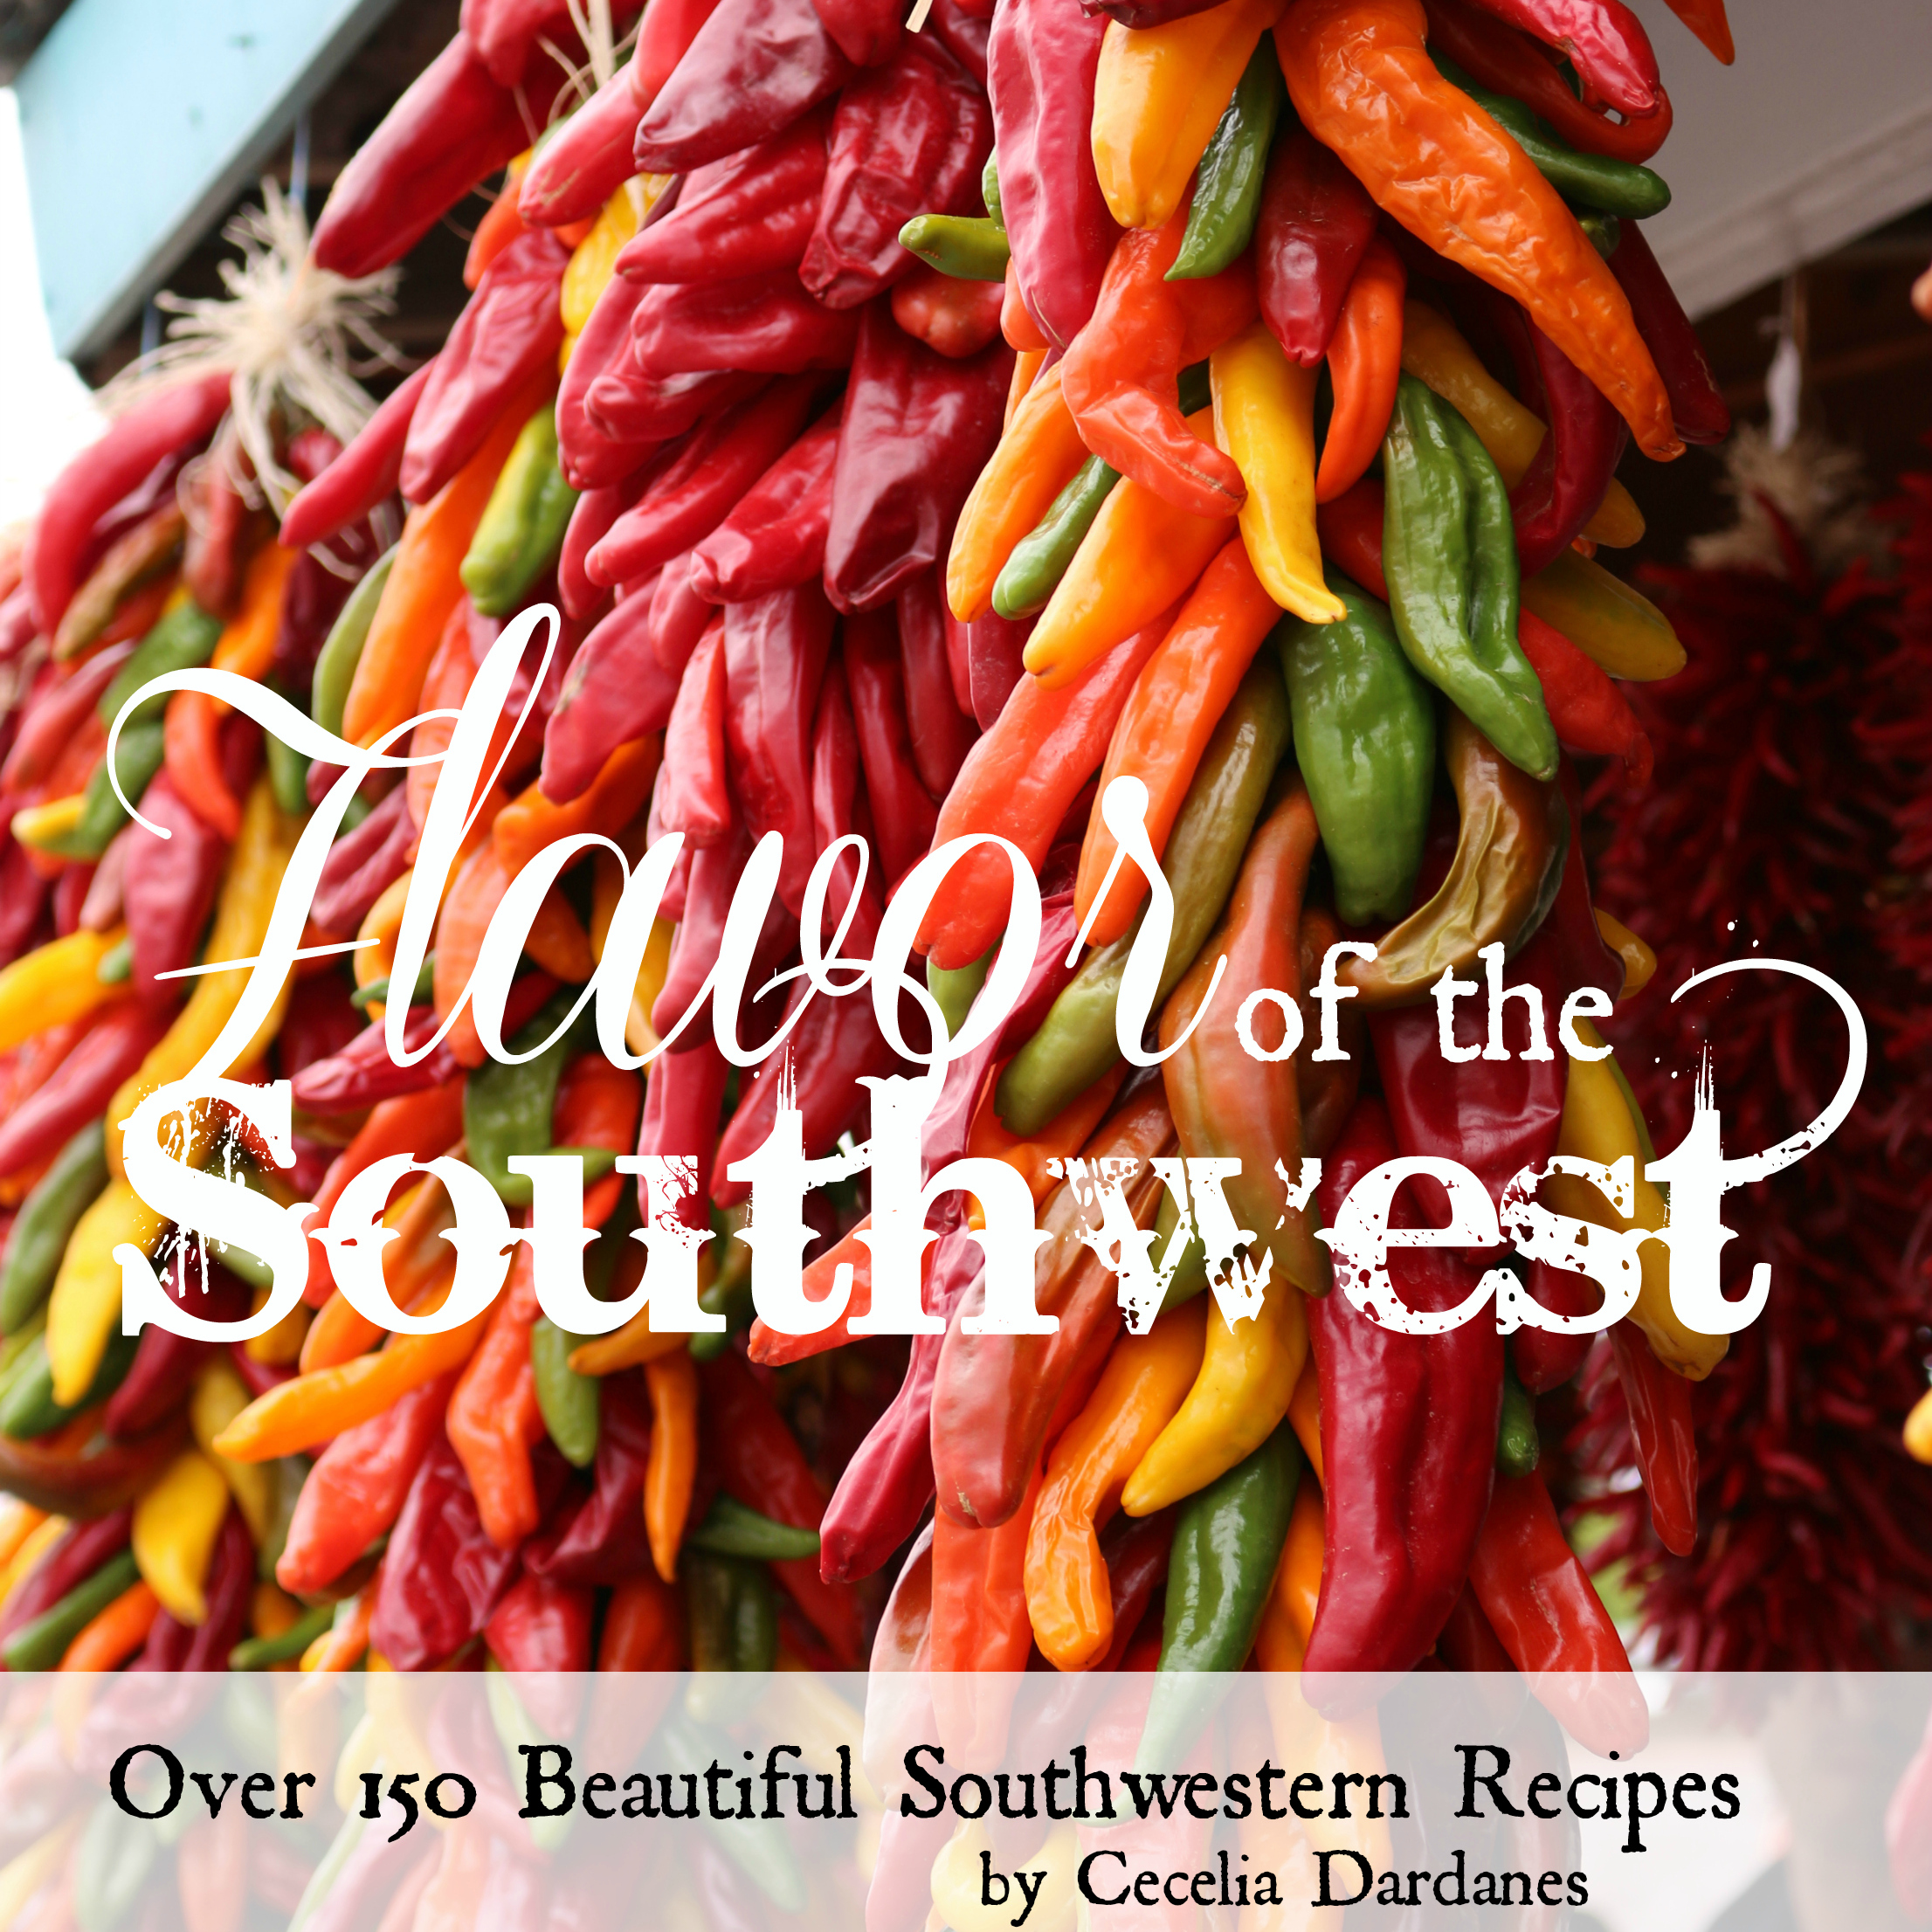 Flavor of the Southwest - 320 pages of beautiful southwestern recipes. Each recipe has a picture.